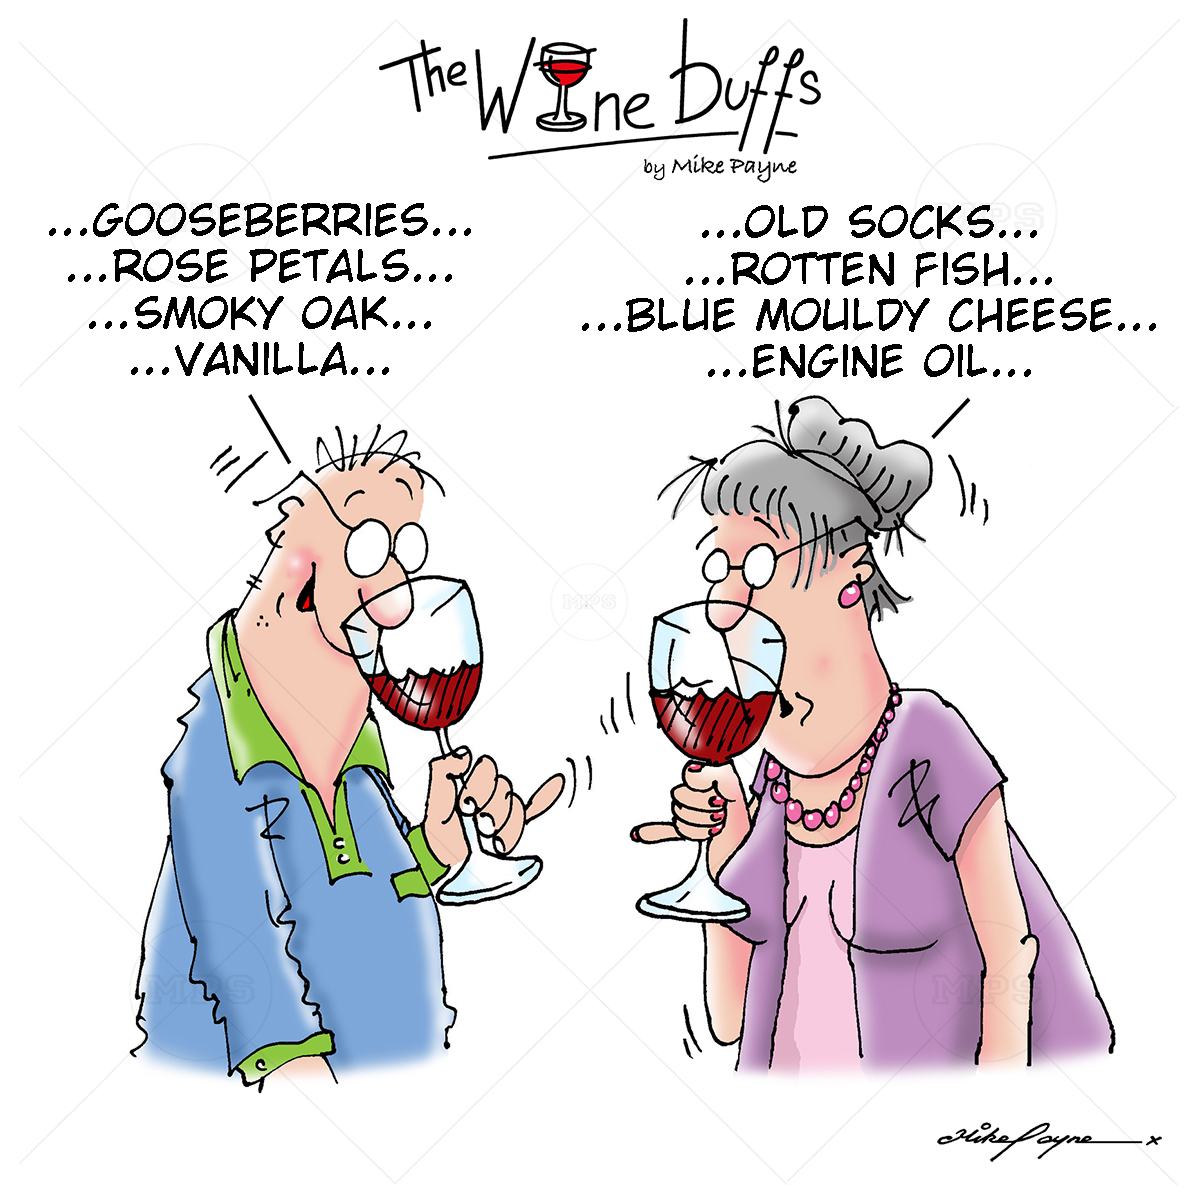 Wine Buffs Cartoon 010